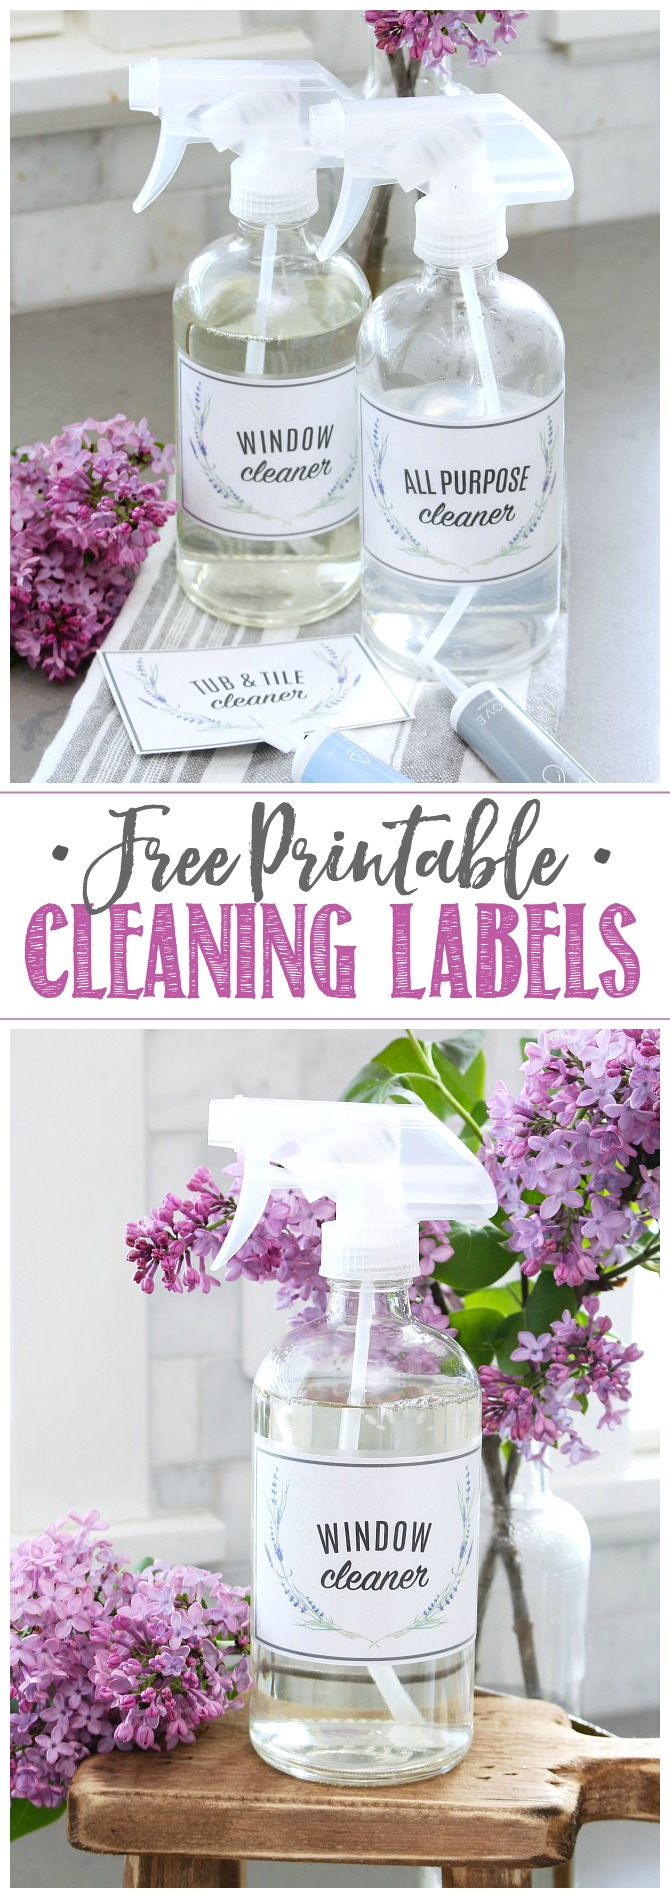 Cleaning products in clear glass spray bottles with free printable cleaning labels.